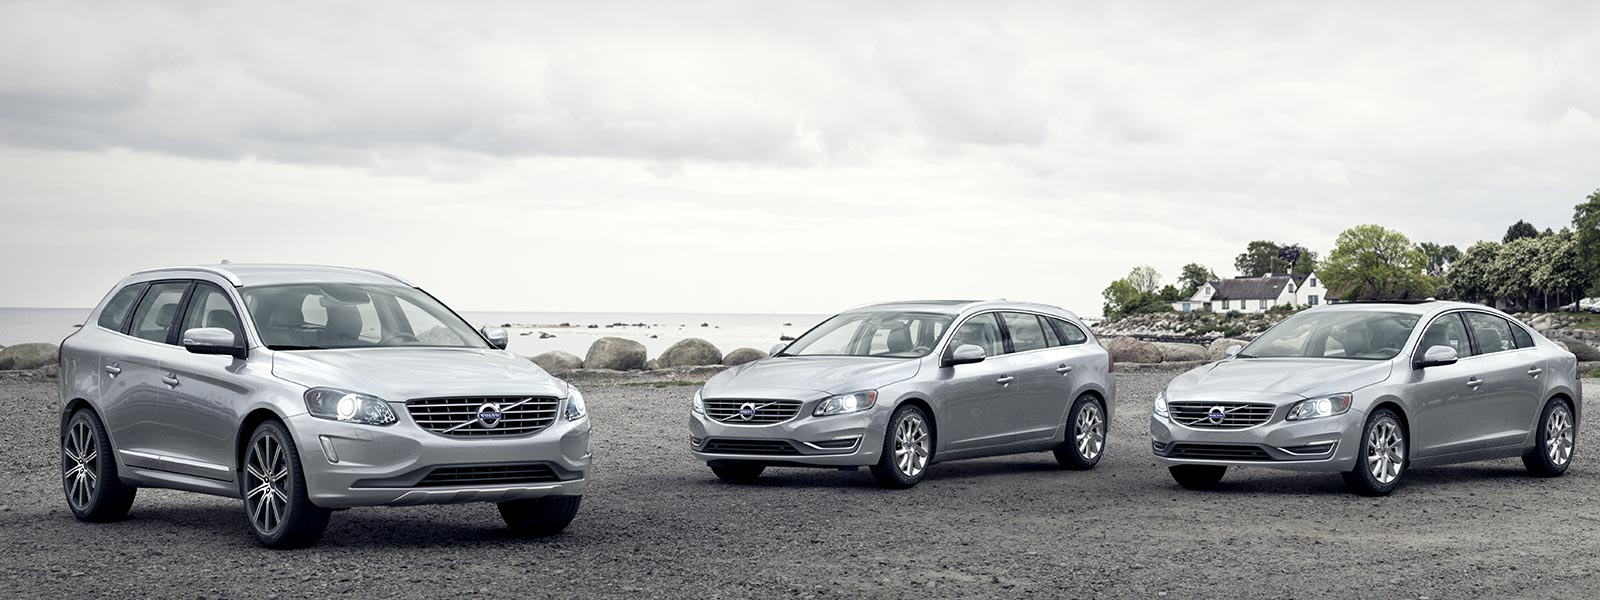 to volvo features program your by next should instead details lease of you care subscribe leasing